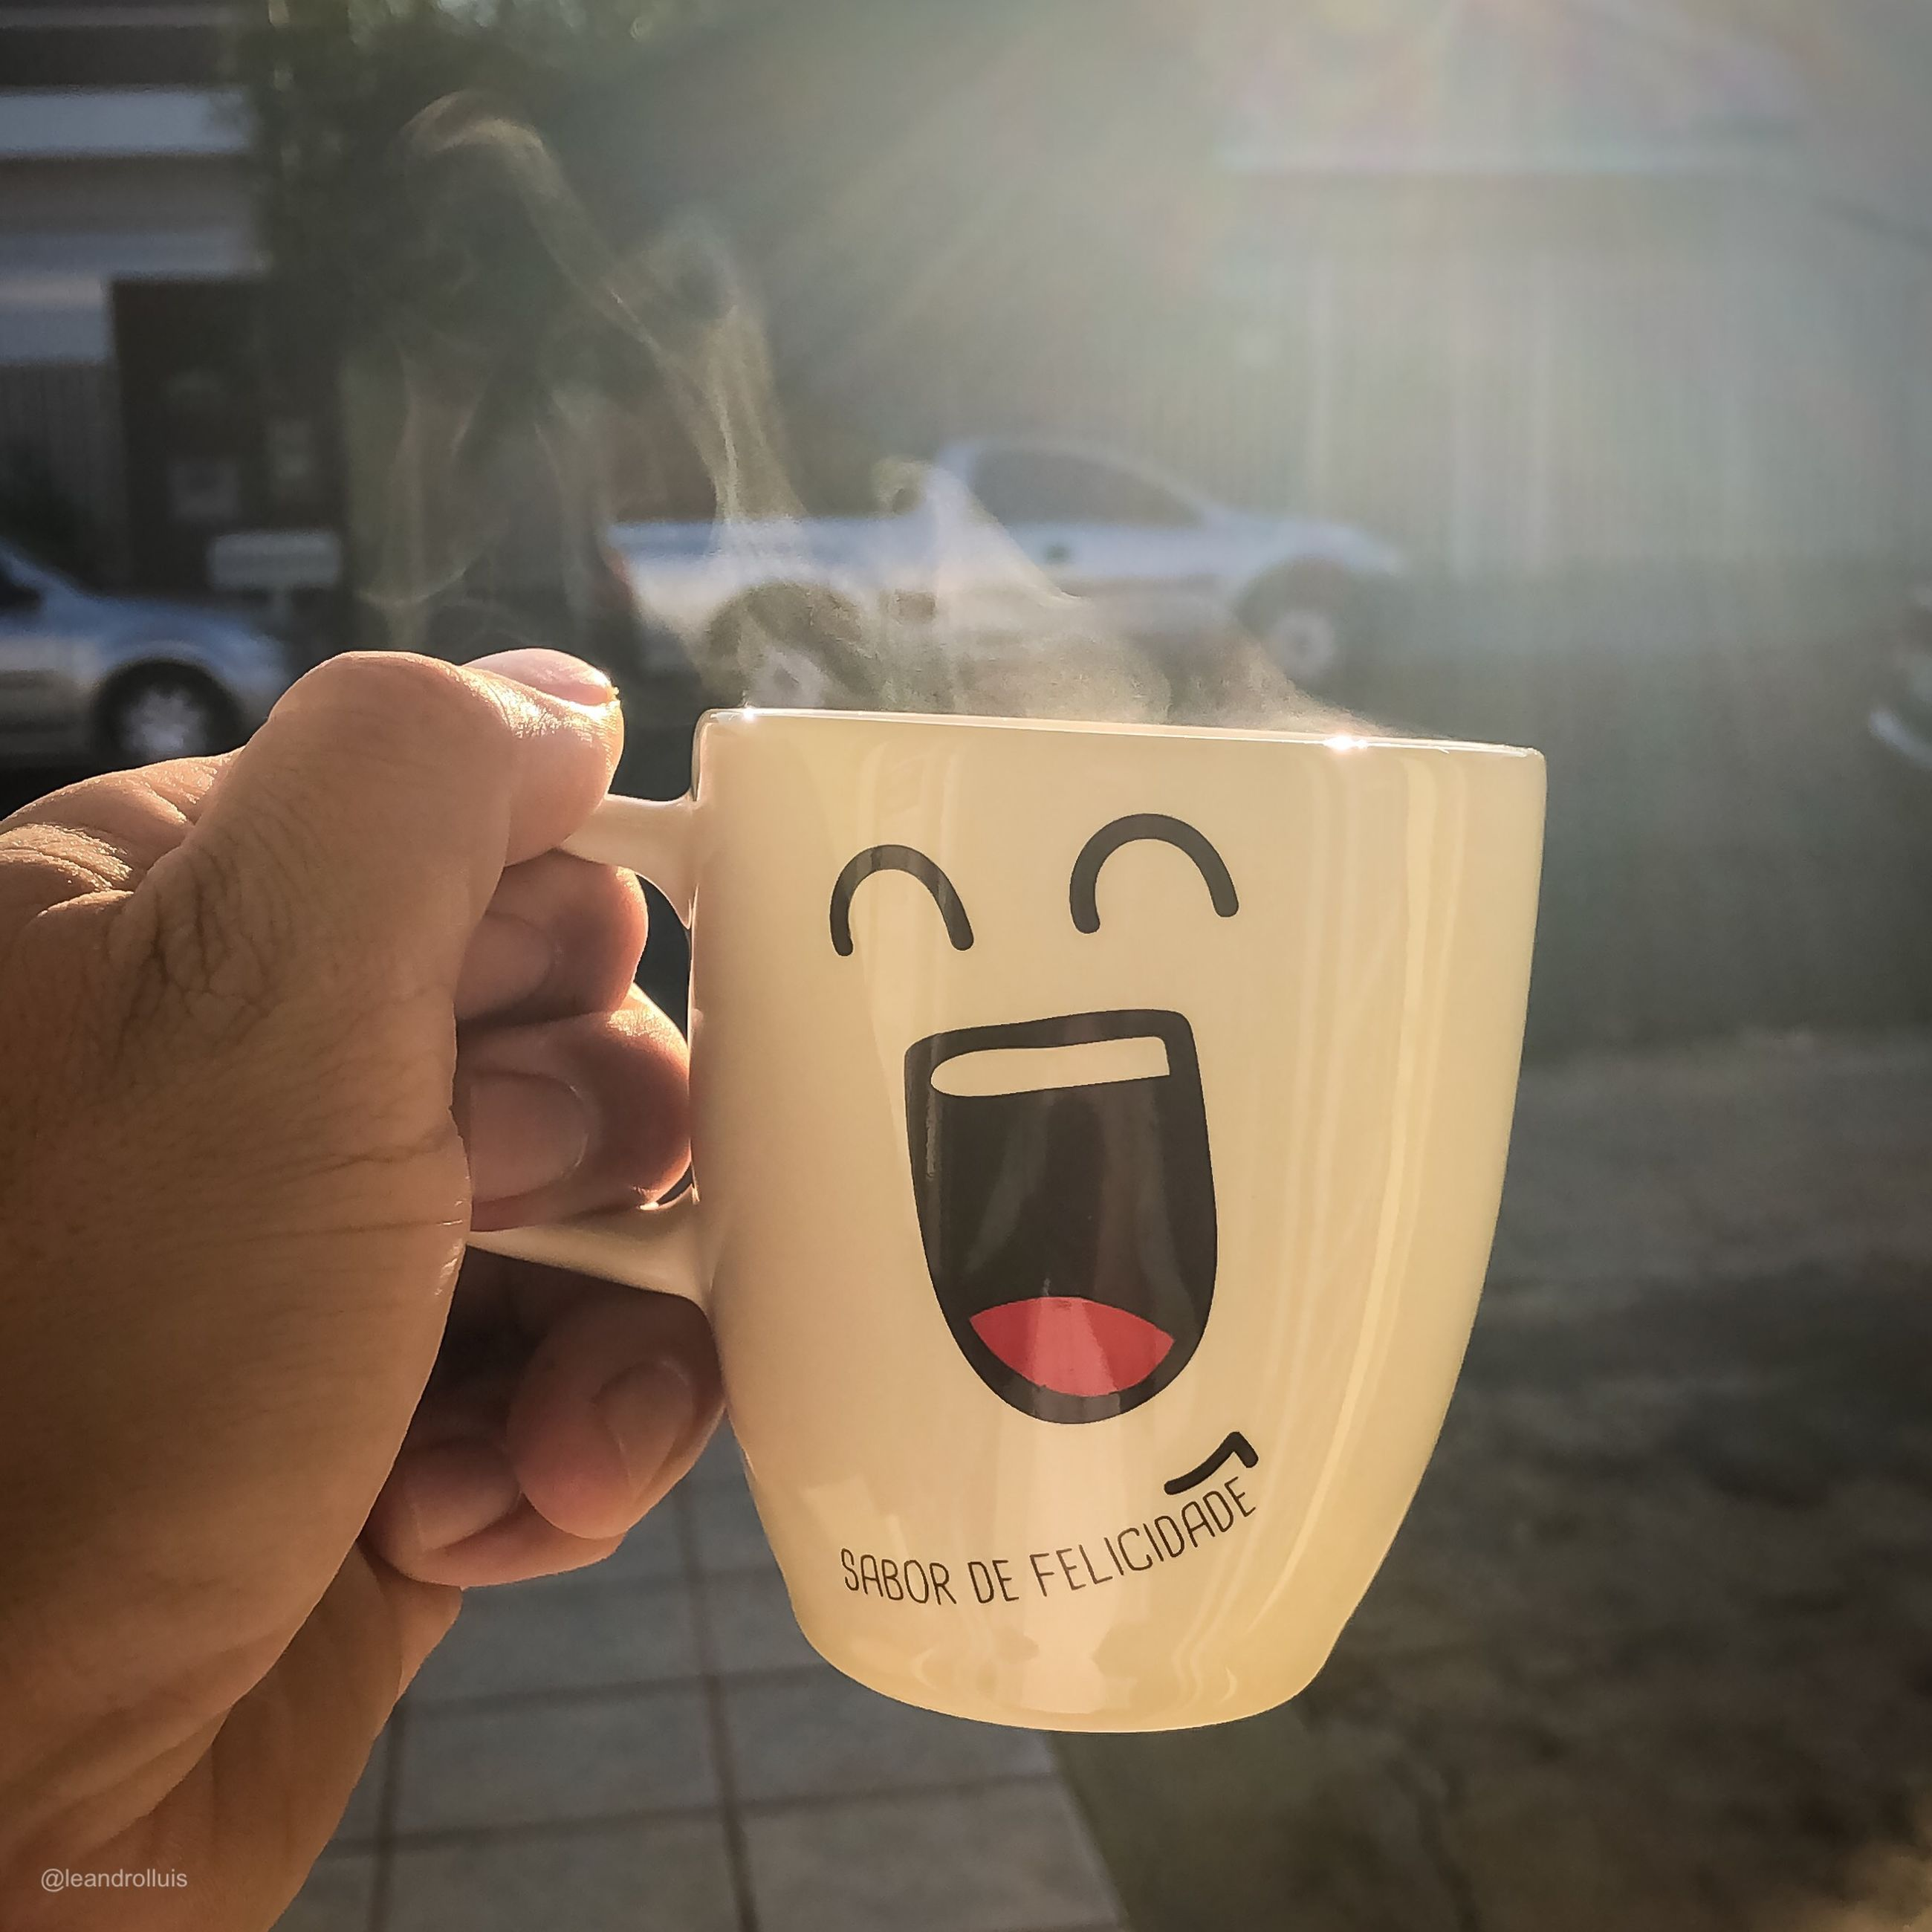 human hand, hand, one person, human body part, holding, real people, lifestyles, cup, focus on foreground, unrecognizable person, communication, day, mug, finger, body part, social issues, human finger, leisure activity, close-up, outdoors, message